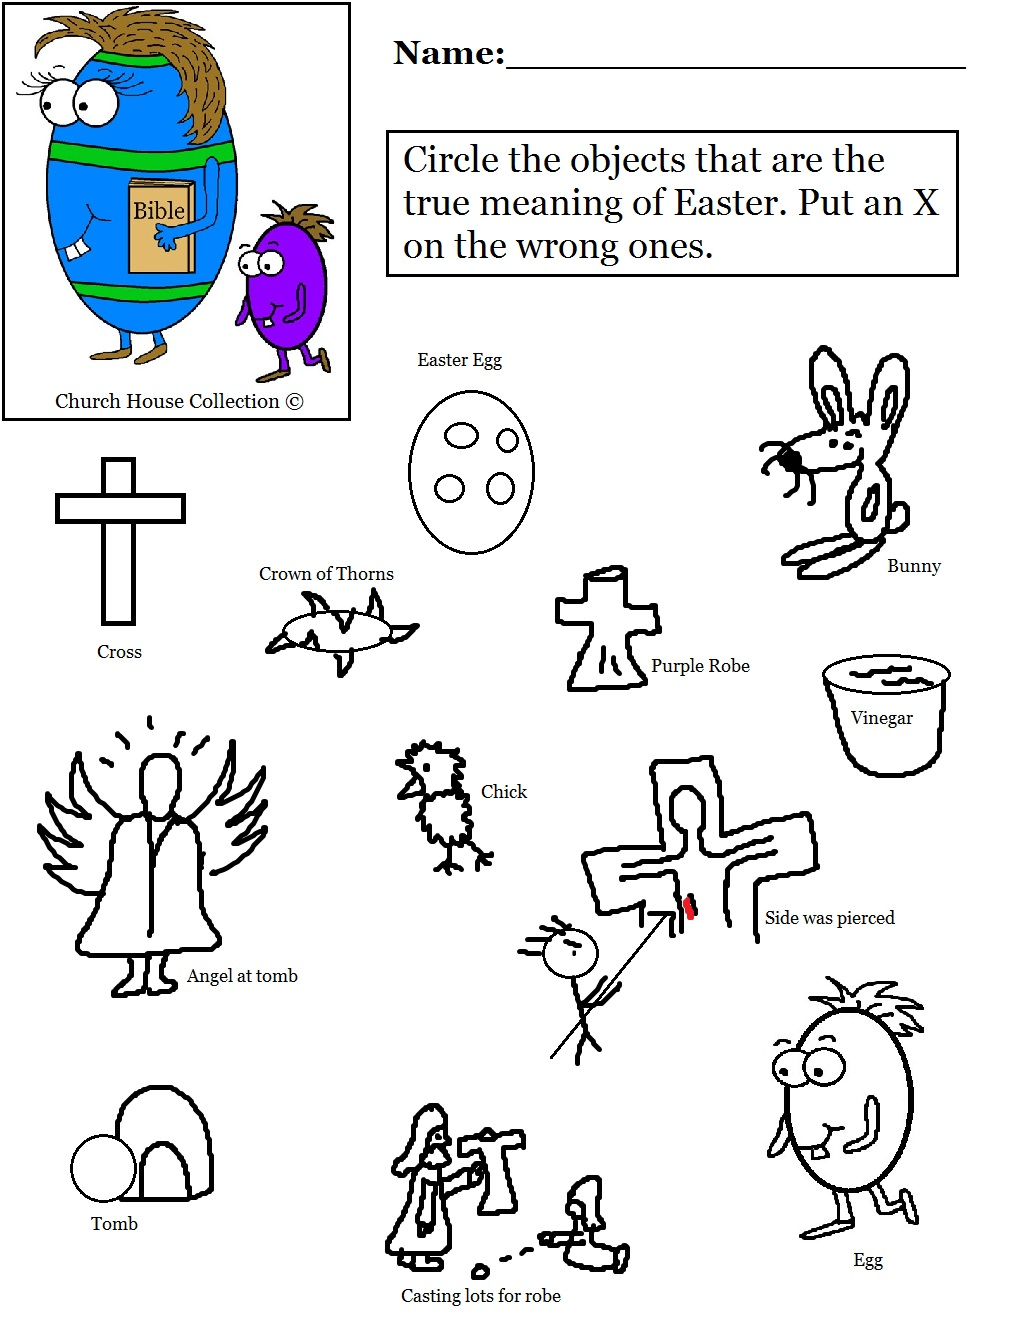 Worksheet Sunday School Worksheets church house collection blog easter egg with bible worksheet worksheet